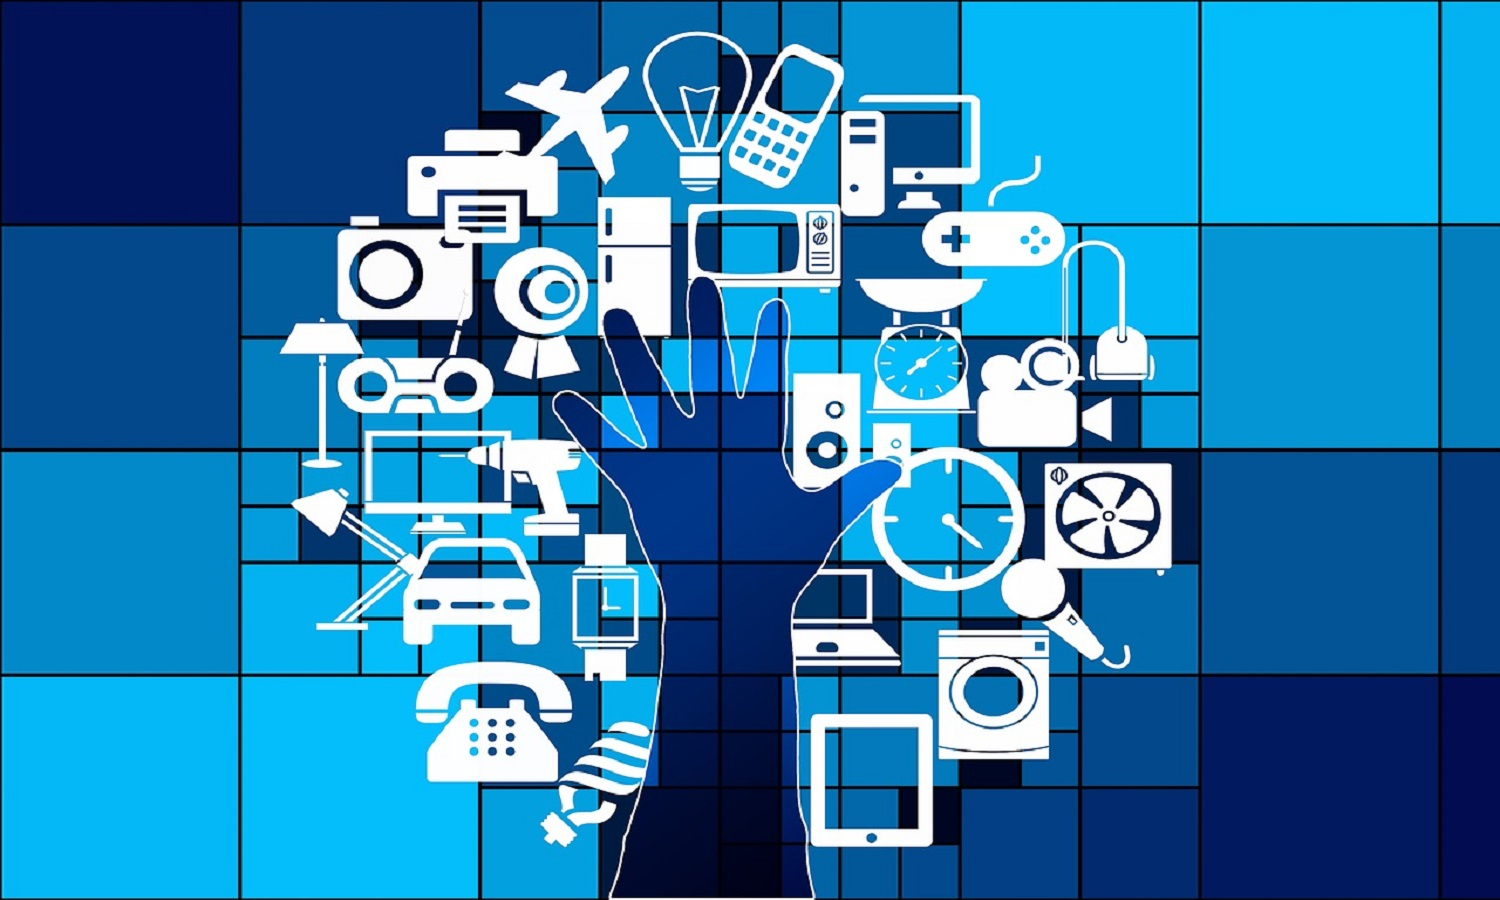 Discuss the impact of internet on supply chain management.